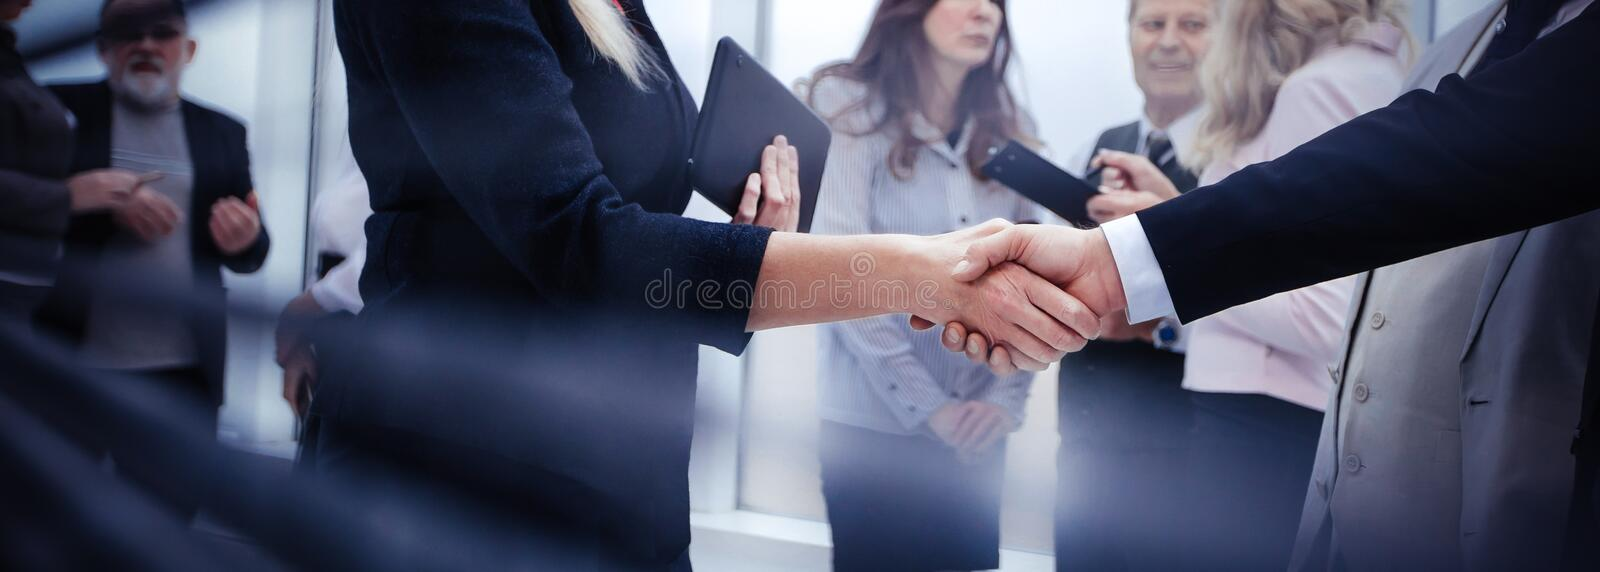 Business people shaking hands while standing near an office window royalty free stock photo